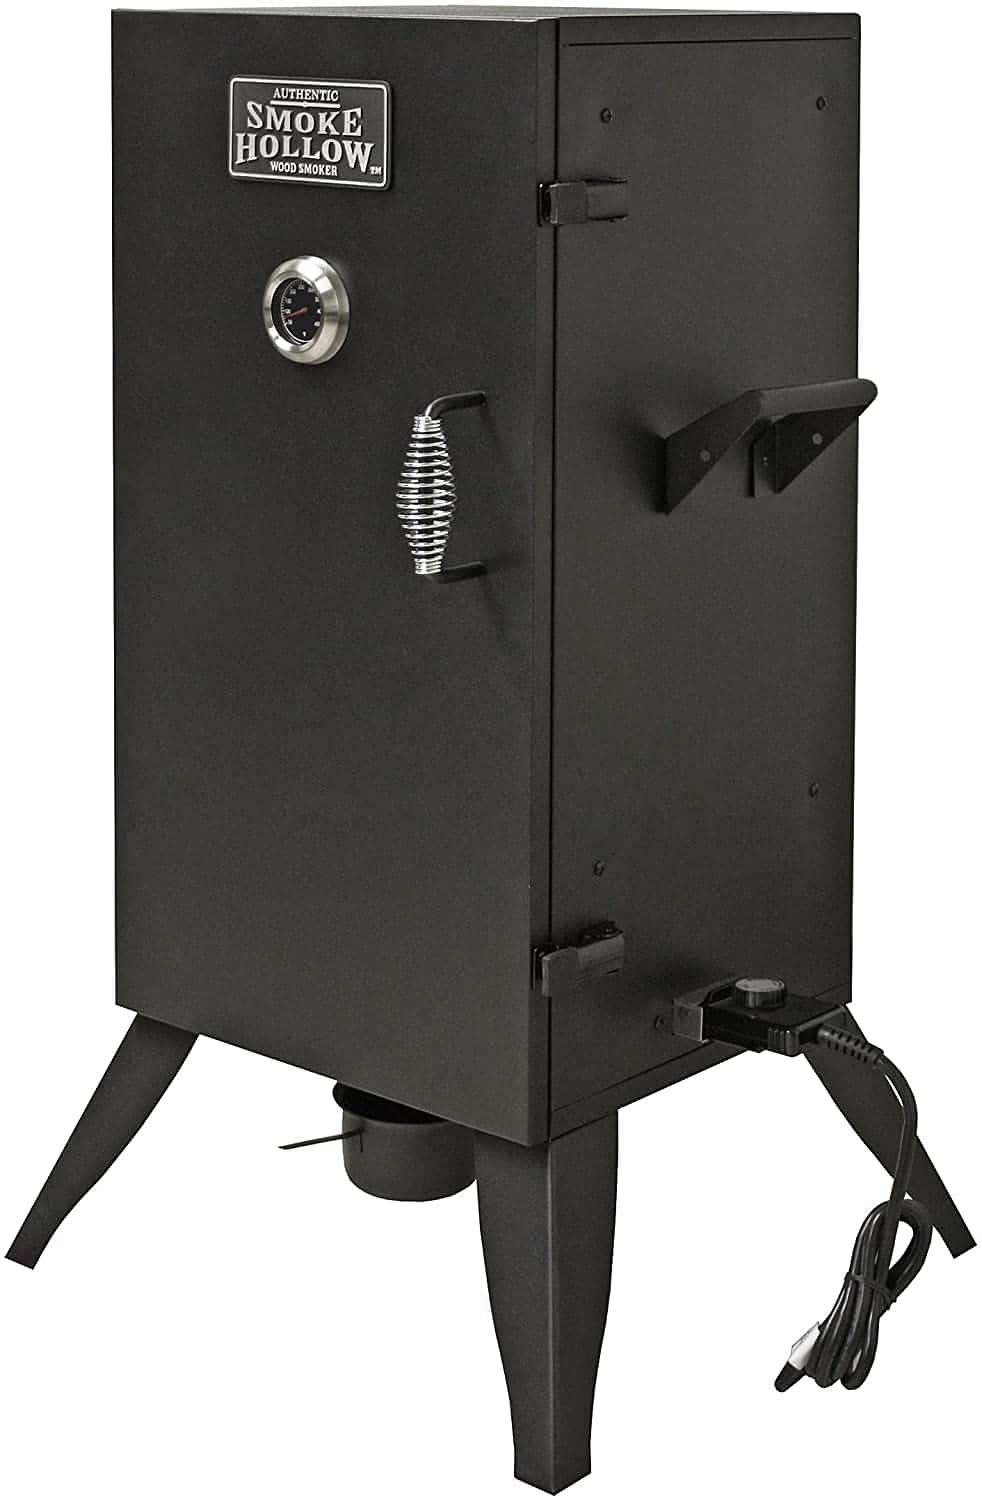 Masterbuilt Smoke Hollow 30162E 30-Inch Electric Smoker with Adjustable Temperature Control